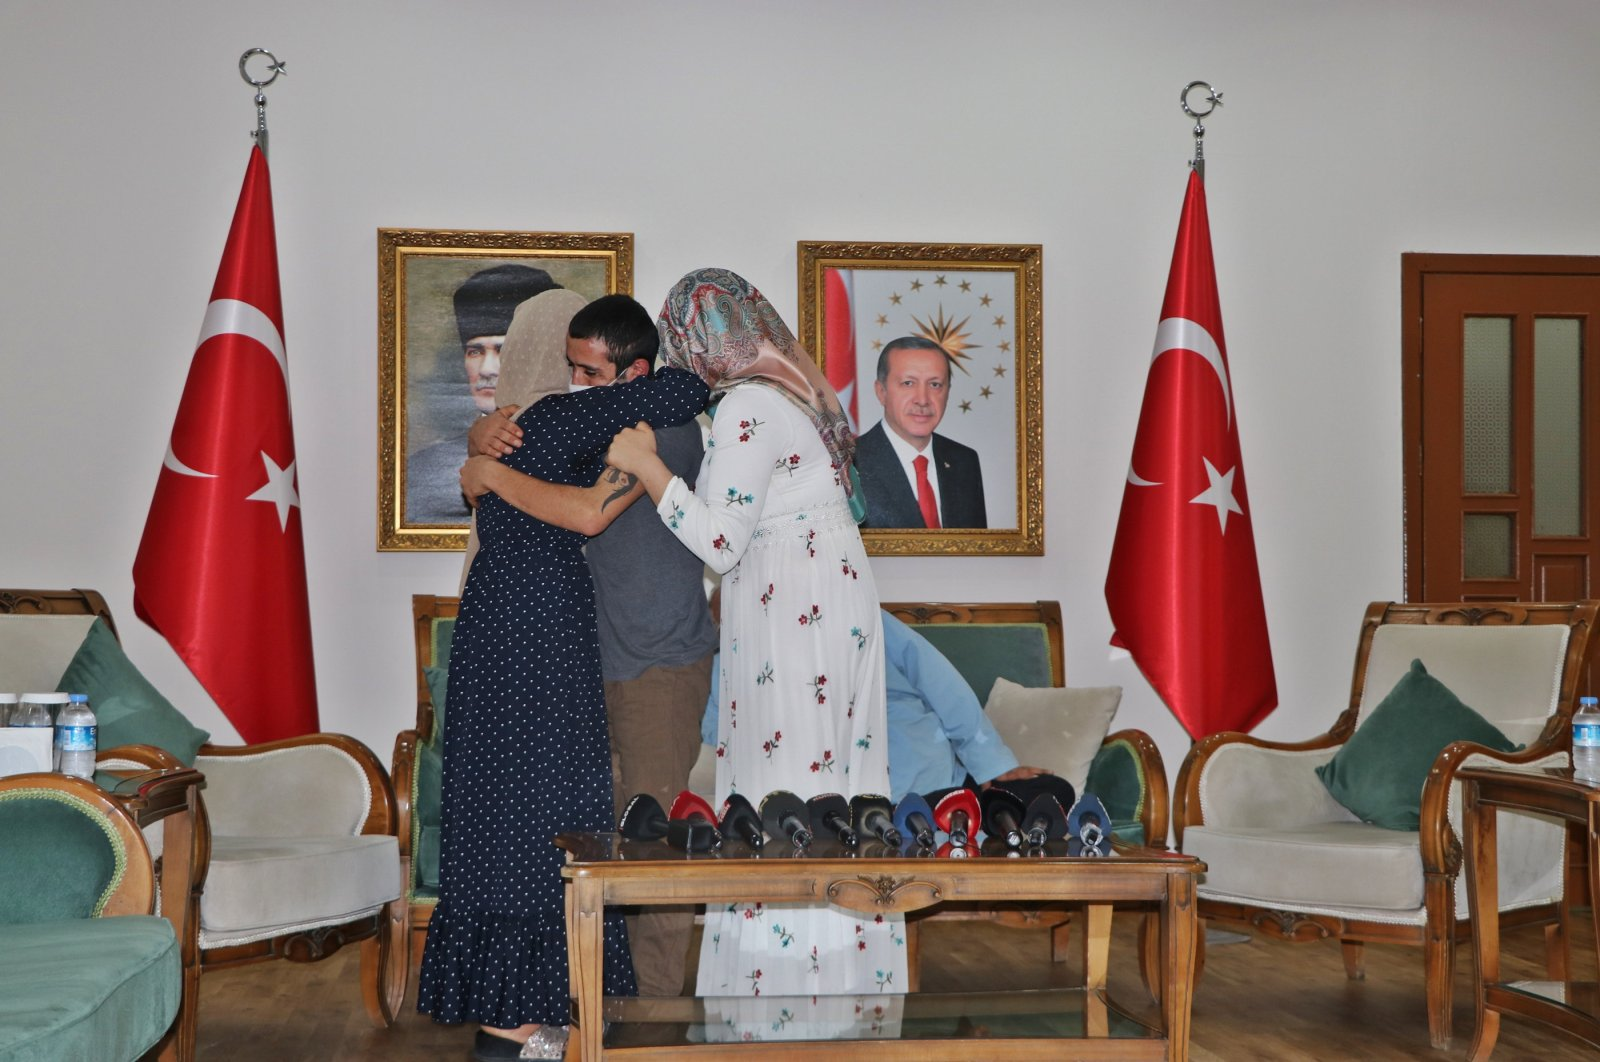 Ertaş family, who have been protesting for the return of their son from PKK, are seen celebrating after their son surrendered to security forces in Diyarbakır, southeastern Turkey, July 10, 2020. (DHA Photo)